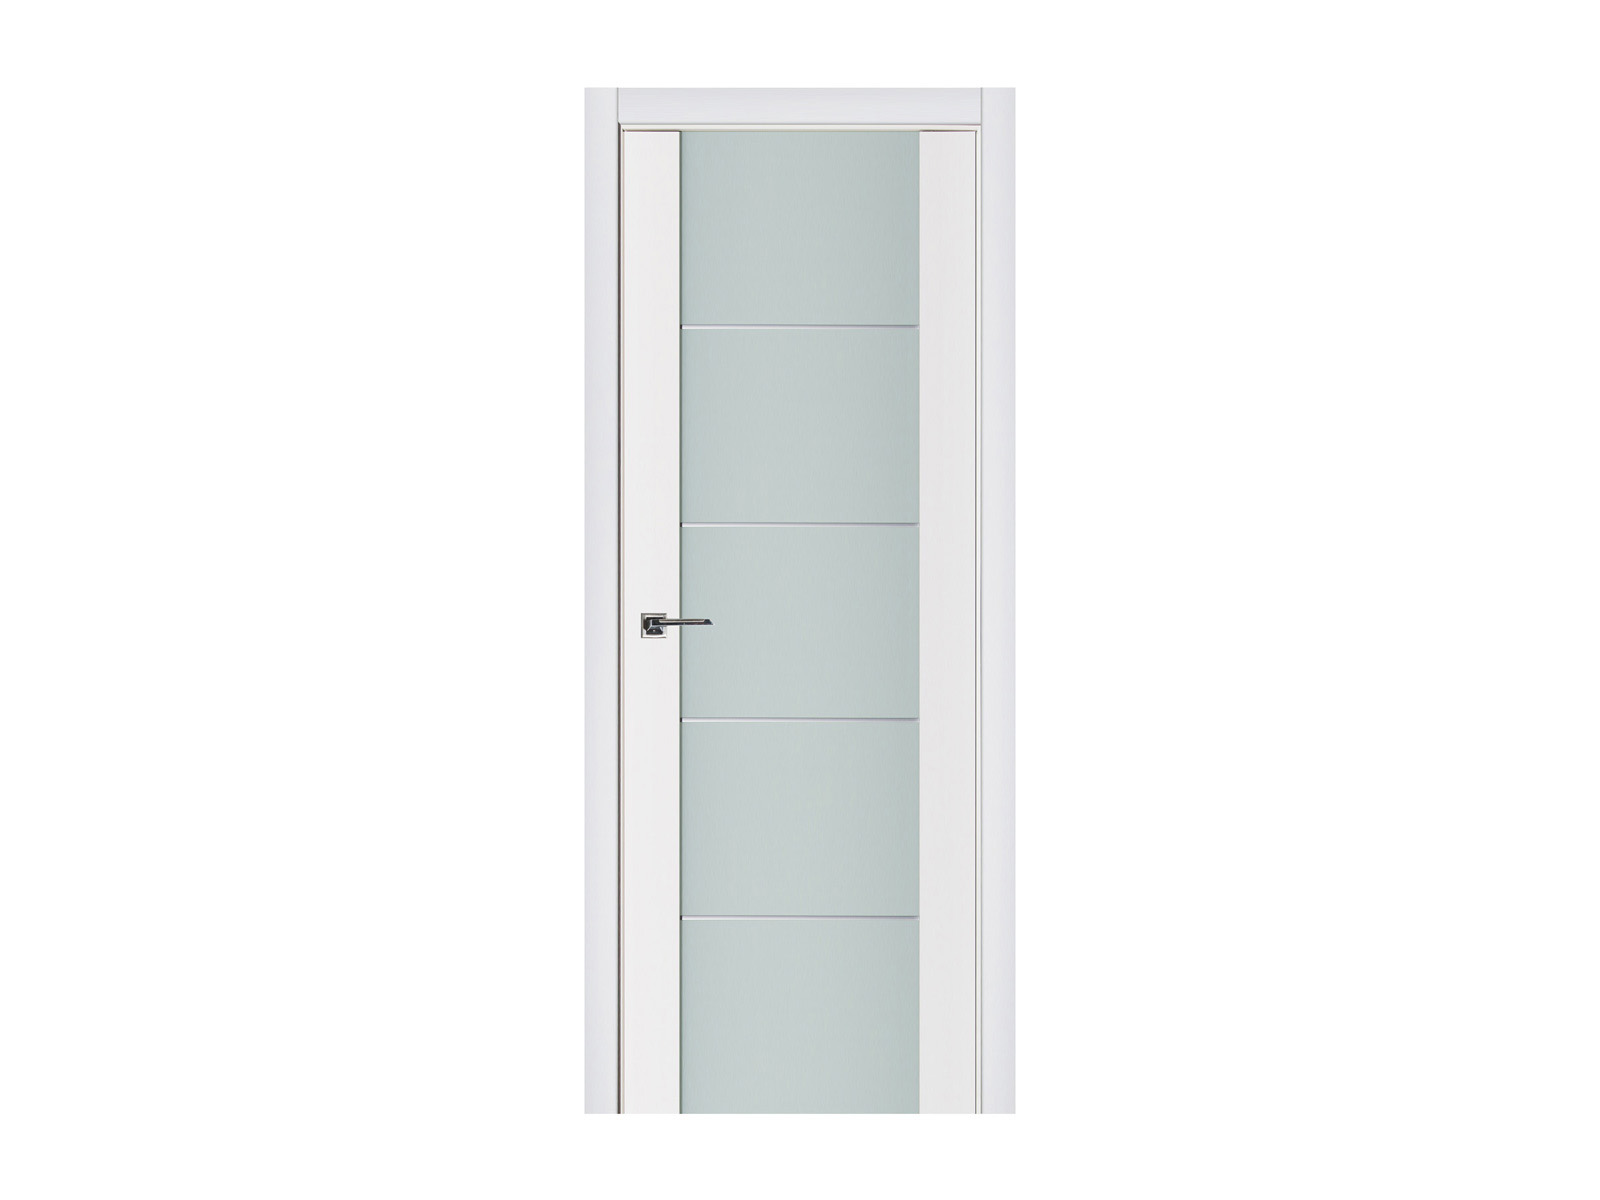 Triplex 007 white wood lacquered modern interior door for 007 door locks